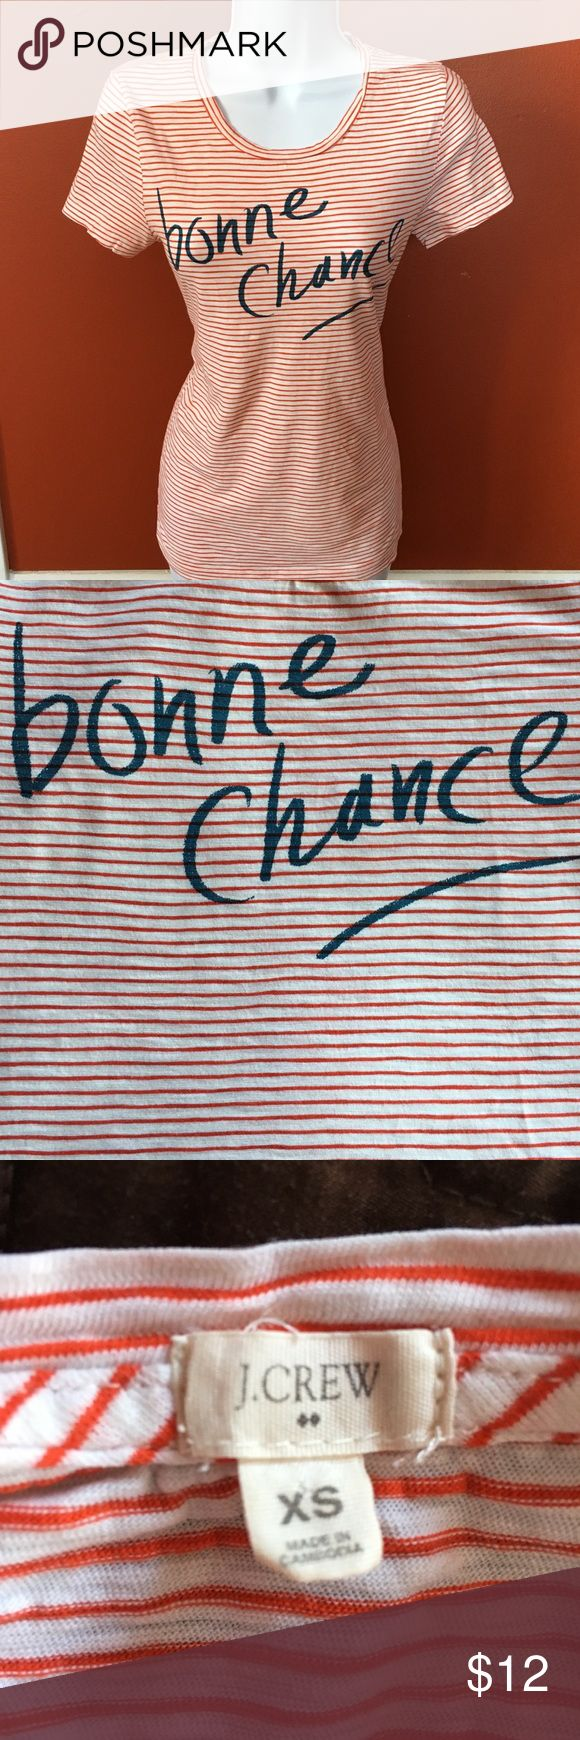 """""""Bonne Chance"""" J. Crew T-shirt perfect for layers! """"Bonne chance"""" means """"good luck"""" in French — show off your international savvy with this red, white and blue T-shirt that goes with jeans, skirts, cords, capris.. it's long enough to tuck into high waisted shorts, can be worn with a miniskirt and cute wedges in the summer, layer under a long cardigan in the fall with booties... so versatile. So comfortable! A tad bit too big on me now so off it goes to someone else to enjoy! J."""